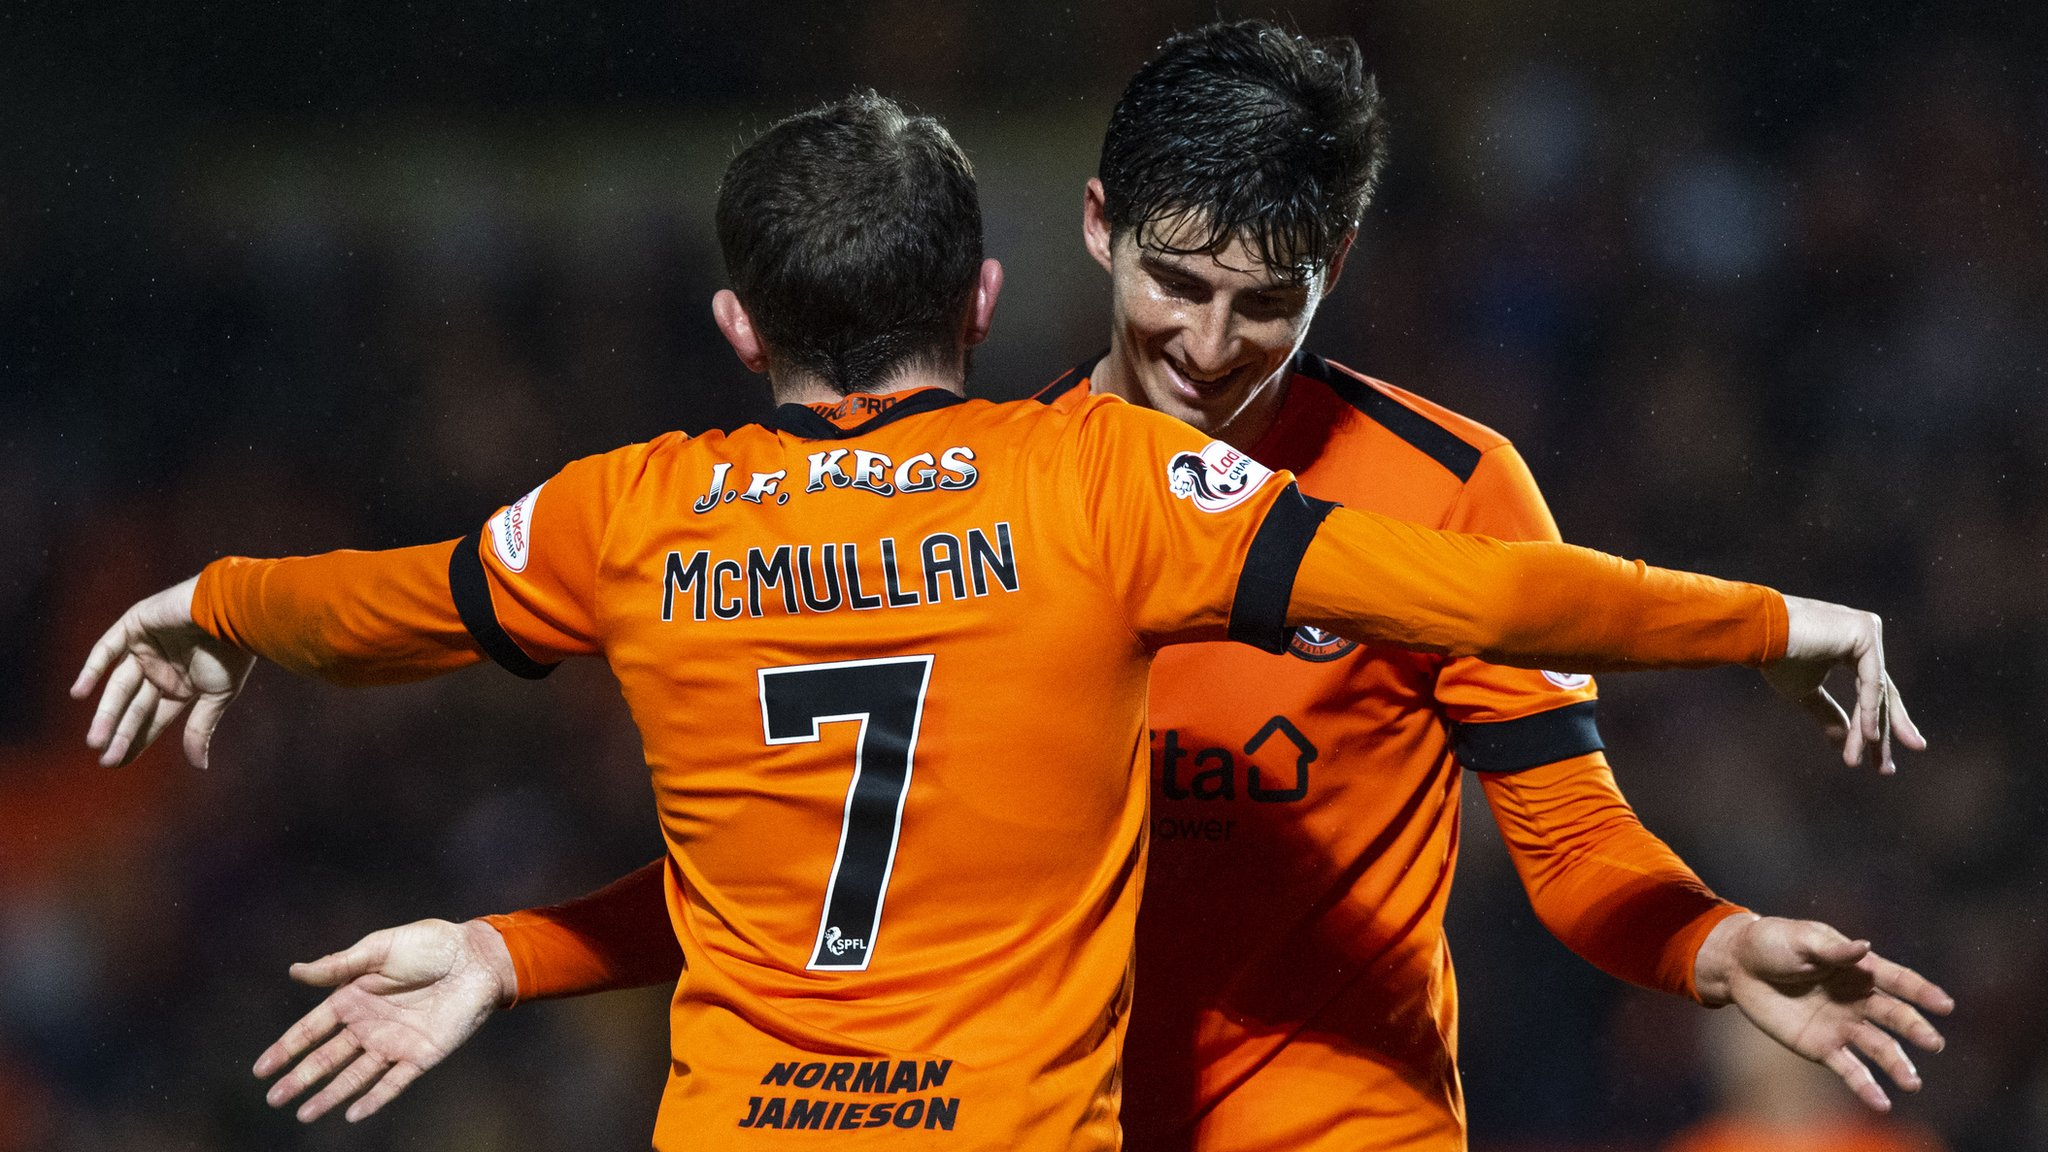 Dundee Utd will be underdogs in play-off final - Neilson